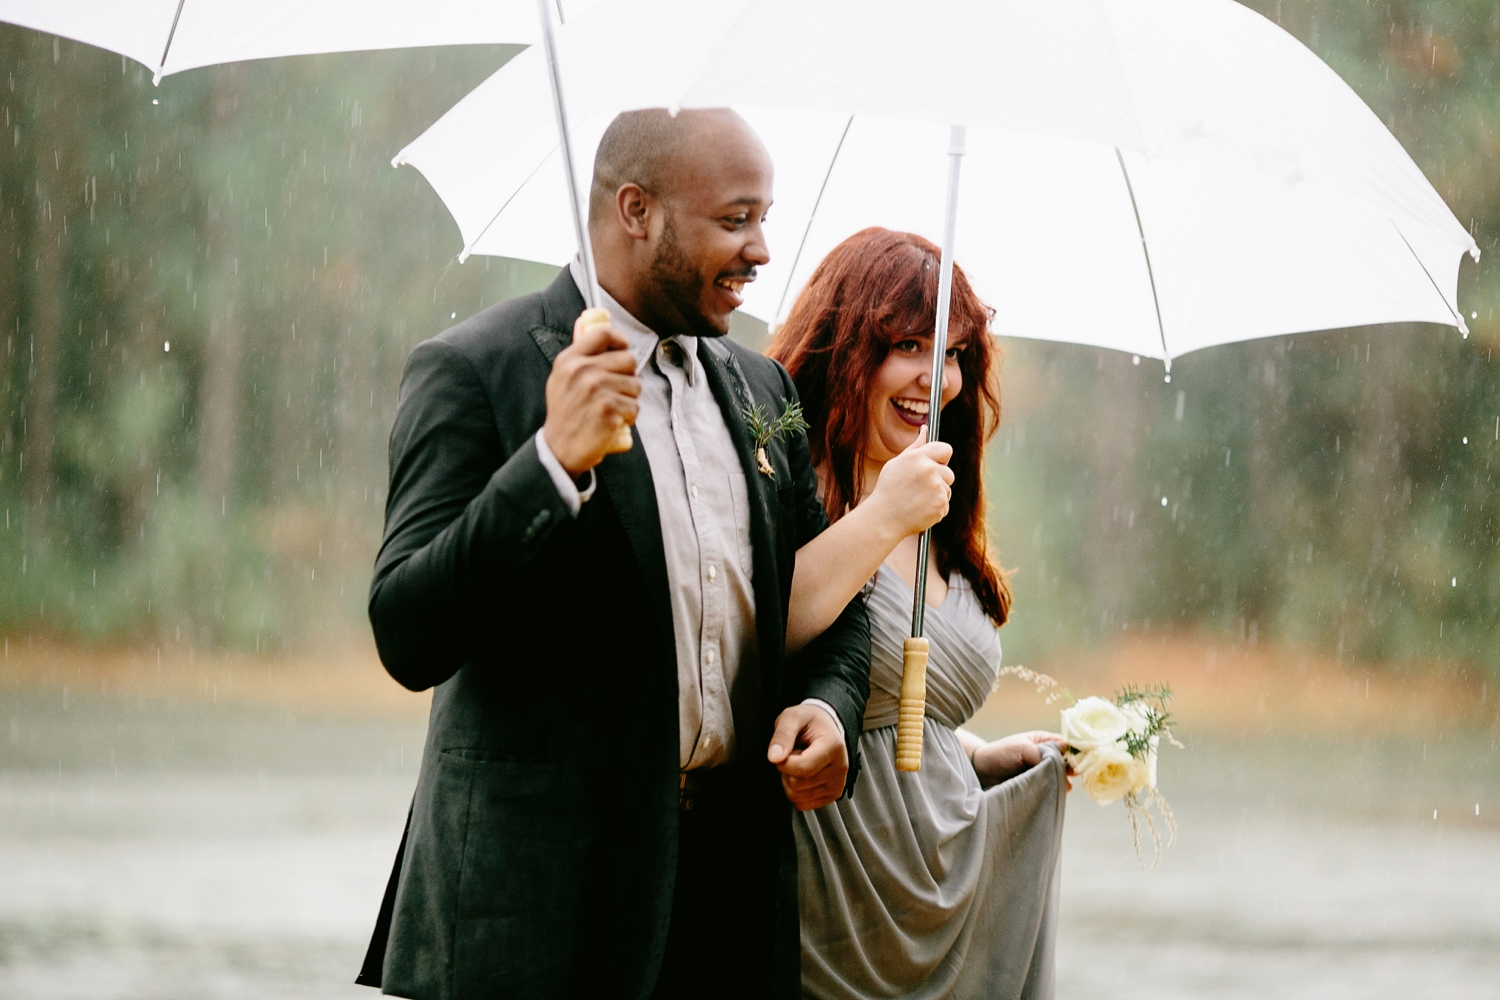 rainy-wedding-pictures-082